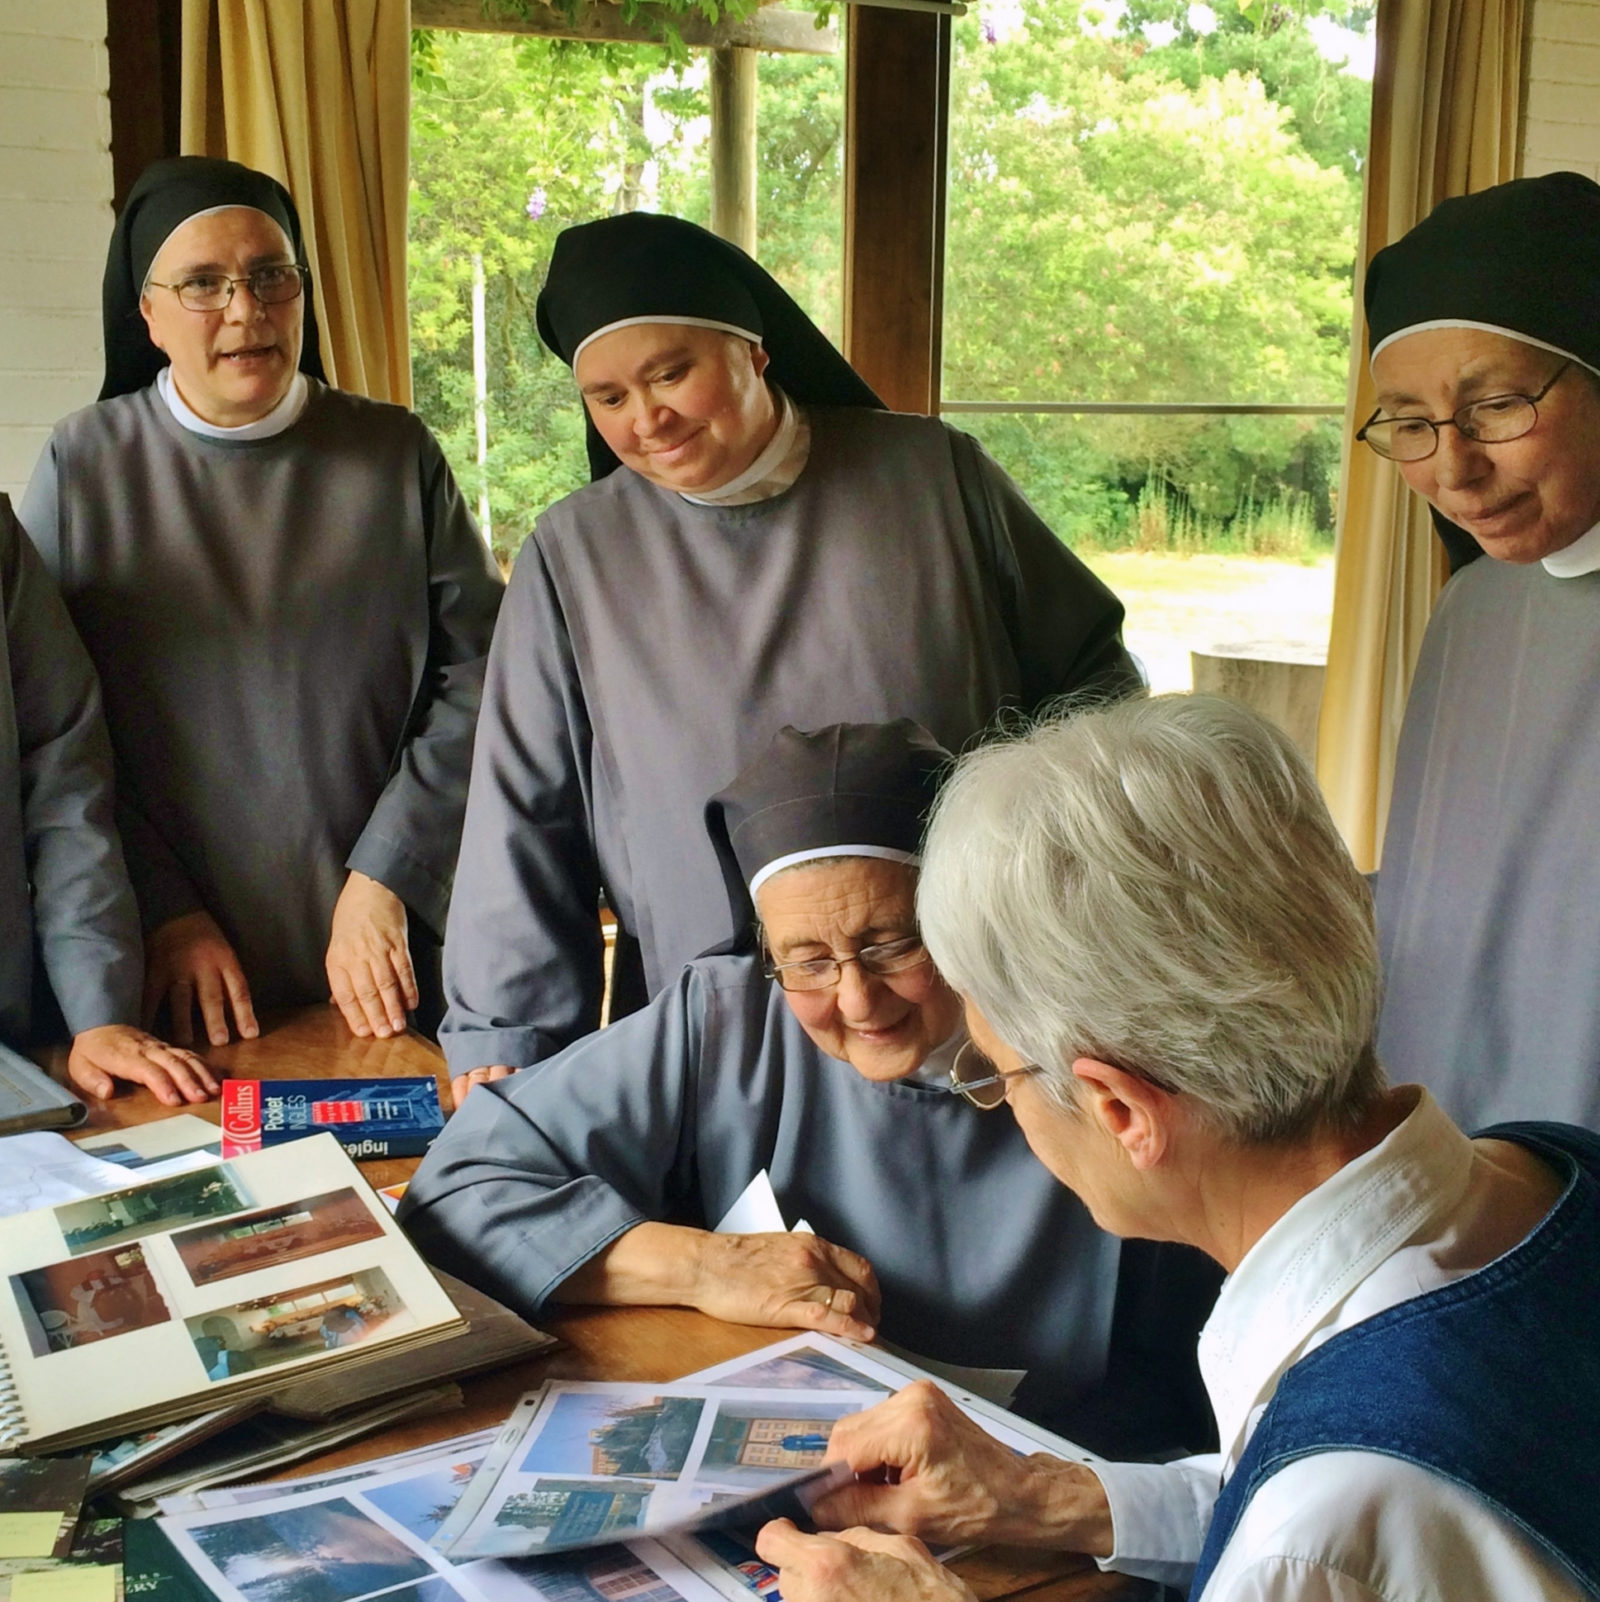 On a visit to Monasterio Santa Maria de Rautén, Sister Theresa Spinler and the Chilean Sisters share photograph albums.